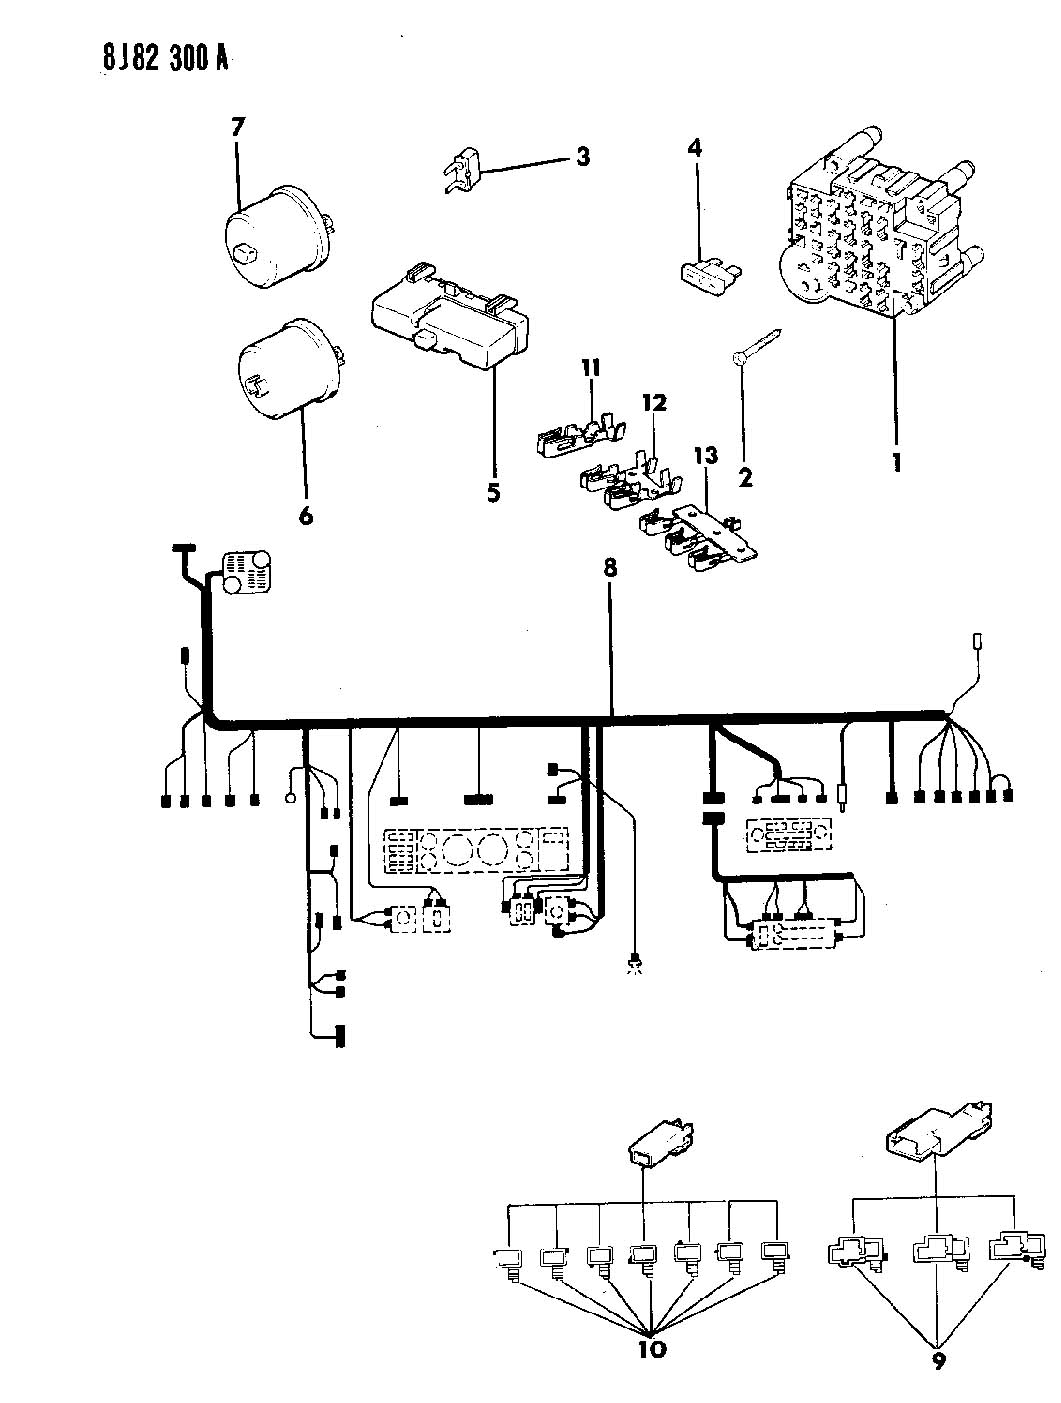 jeep wrangler tail light wiring diagram together with jeep wrangler